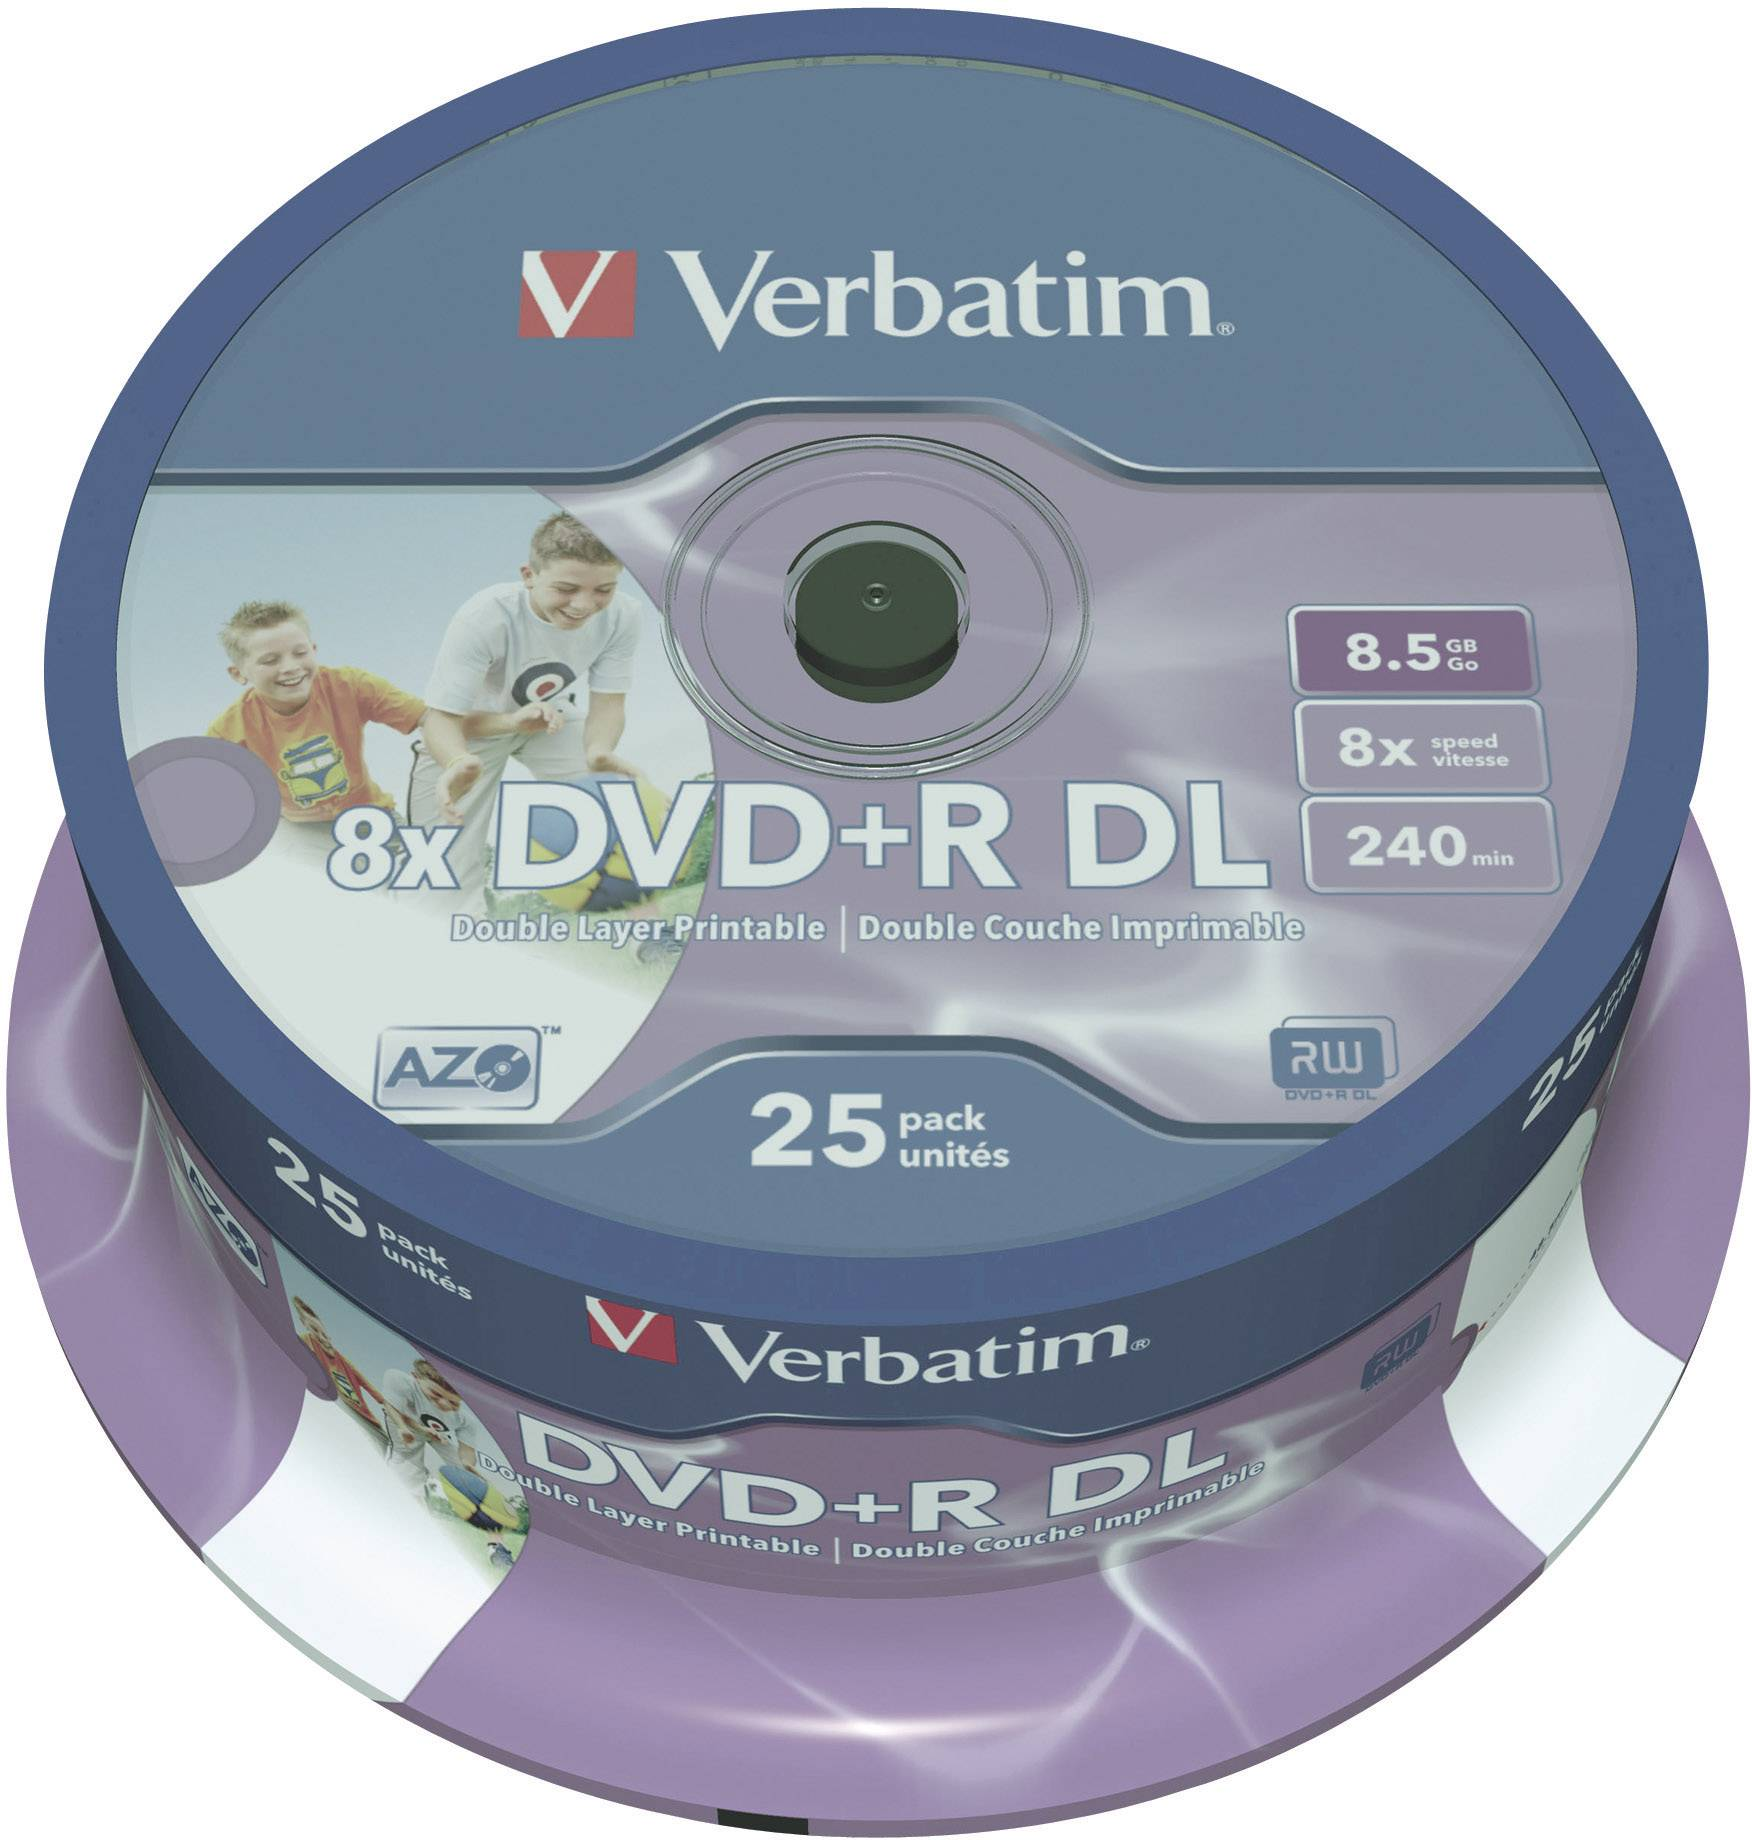 Verbatim DVD+R DL 8,5GB 8X 25 ks SP PRINT